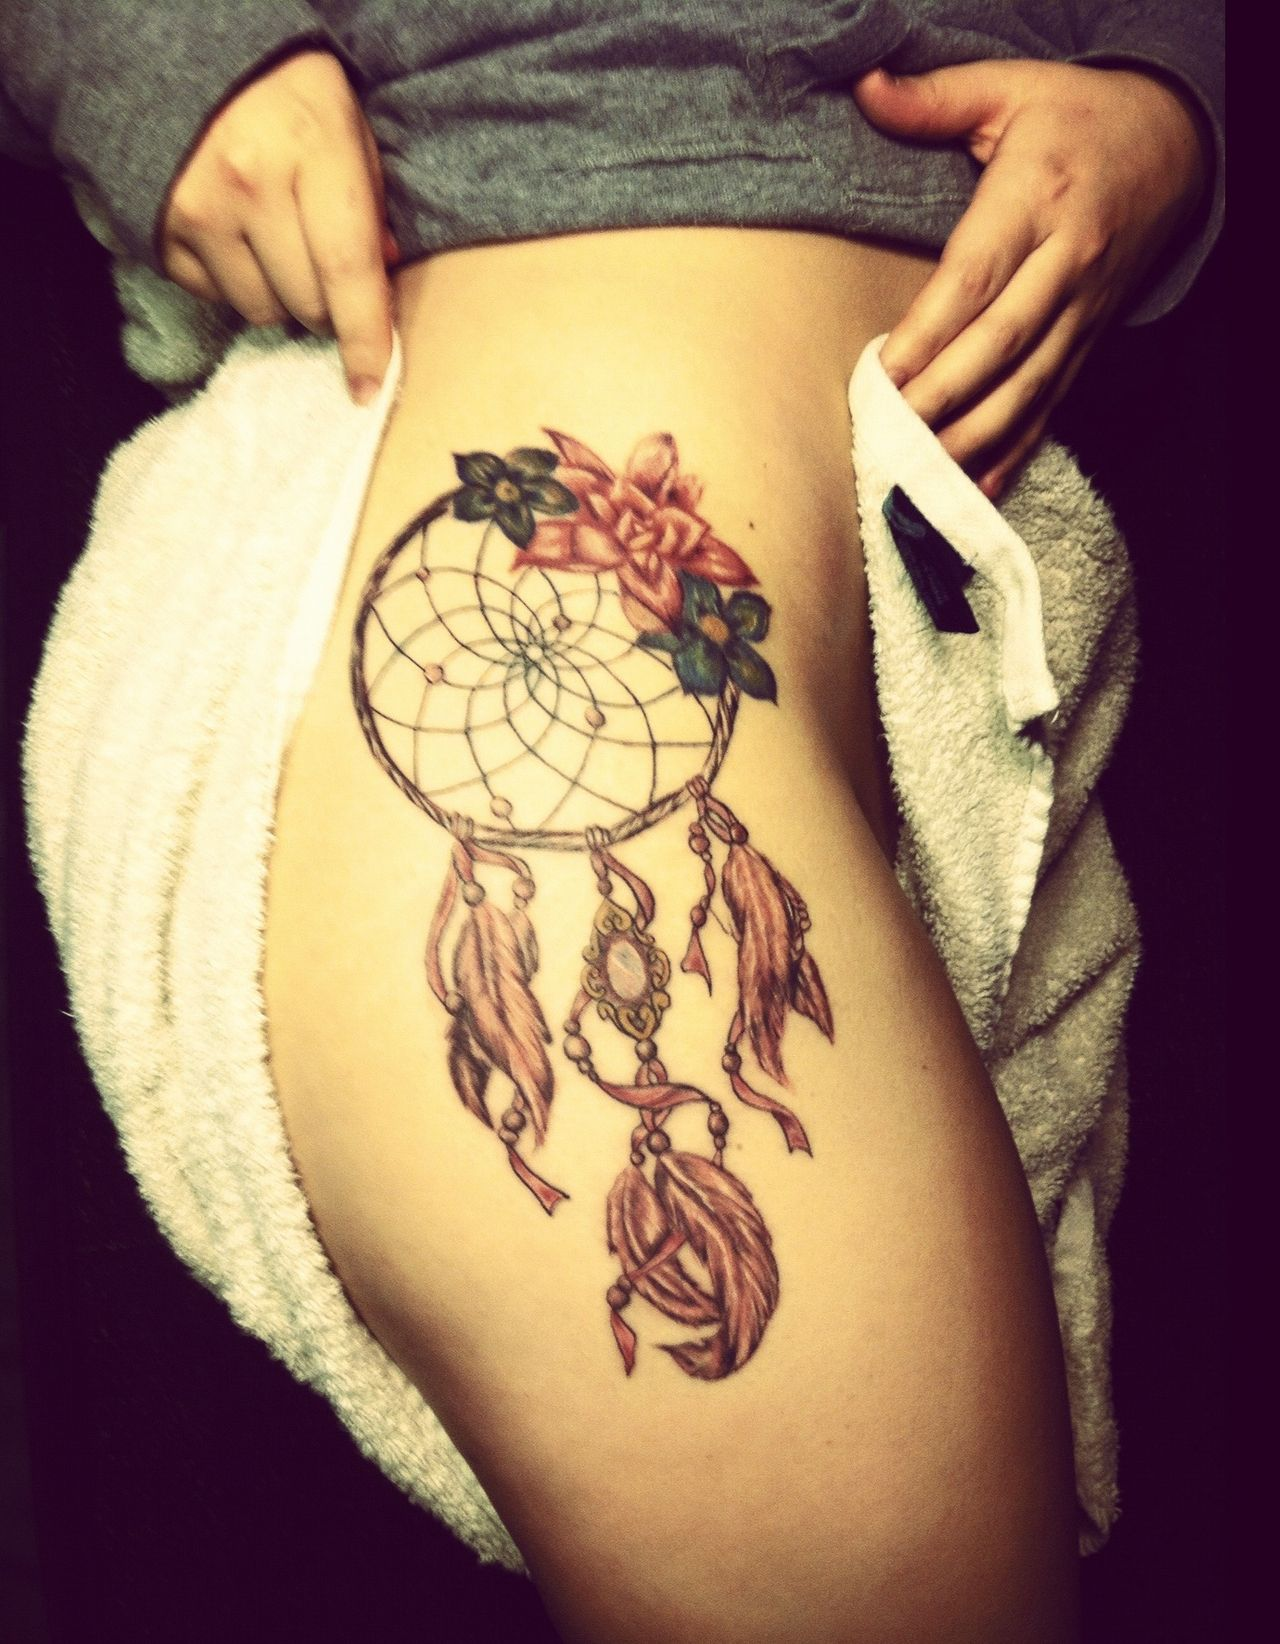 Dream Catcher Tattoo On Thigh Amusing I Love This Dream Catcher Tattoo I Have One On My Shoulder Think I Review